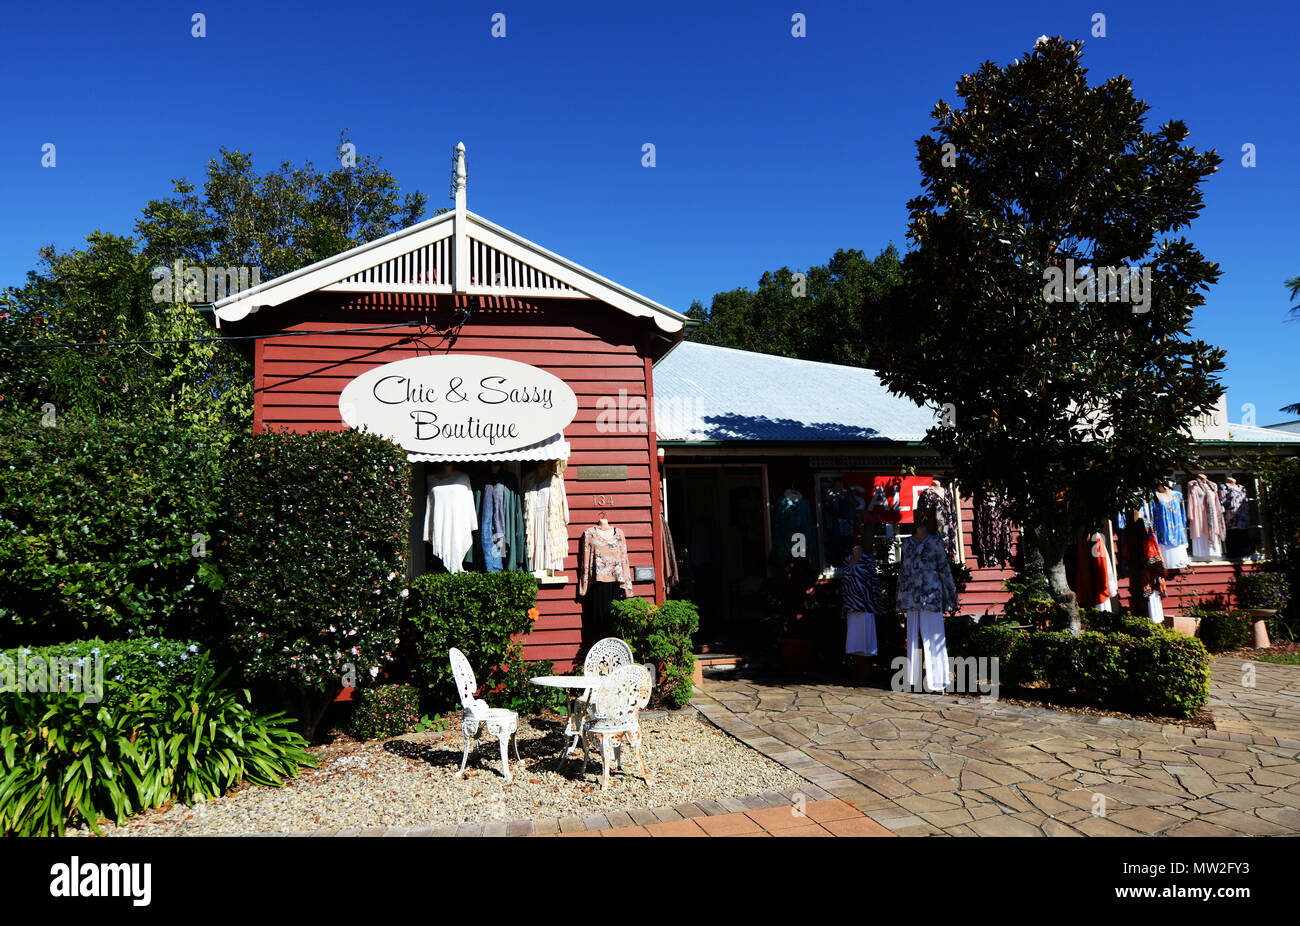 The Chic & Sassy boutique in Montville, Queensland. - Stock Image